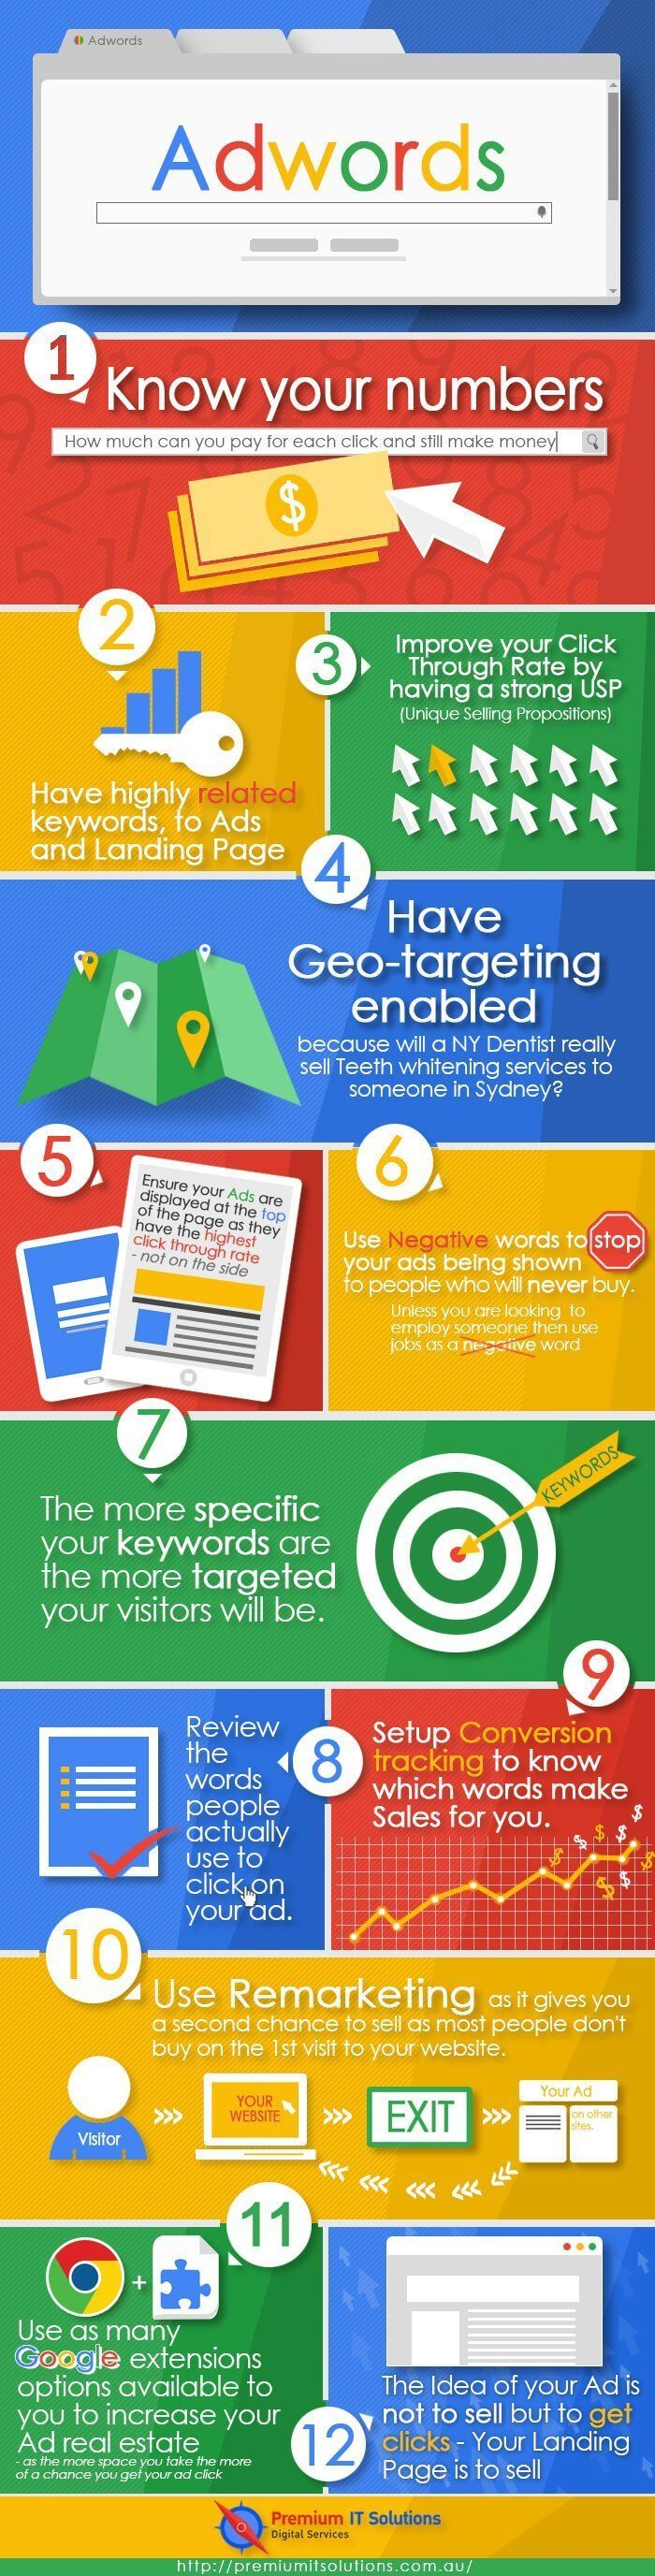 Google Adwords Tips: 12 Steps to Get Started With Pay per Click Marketing